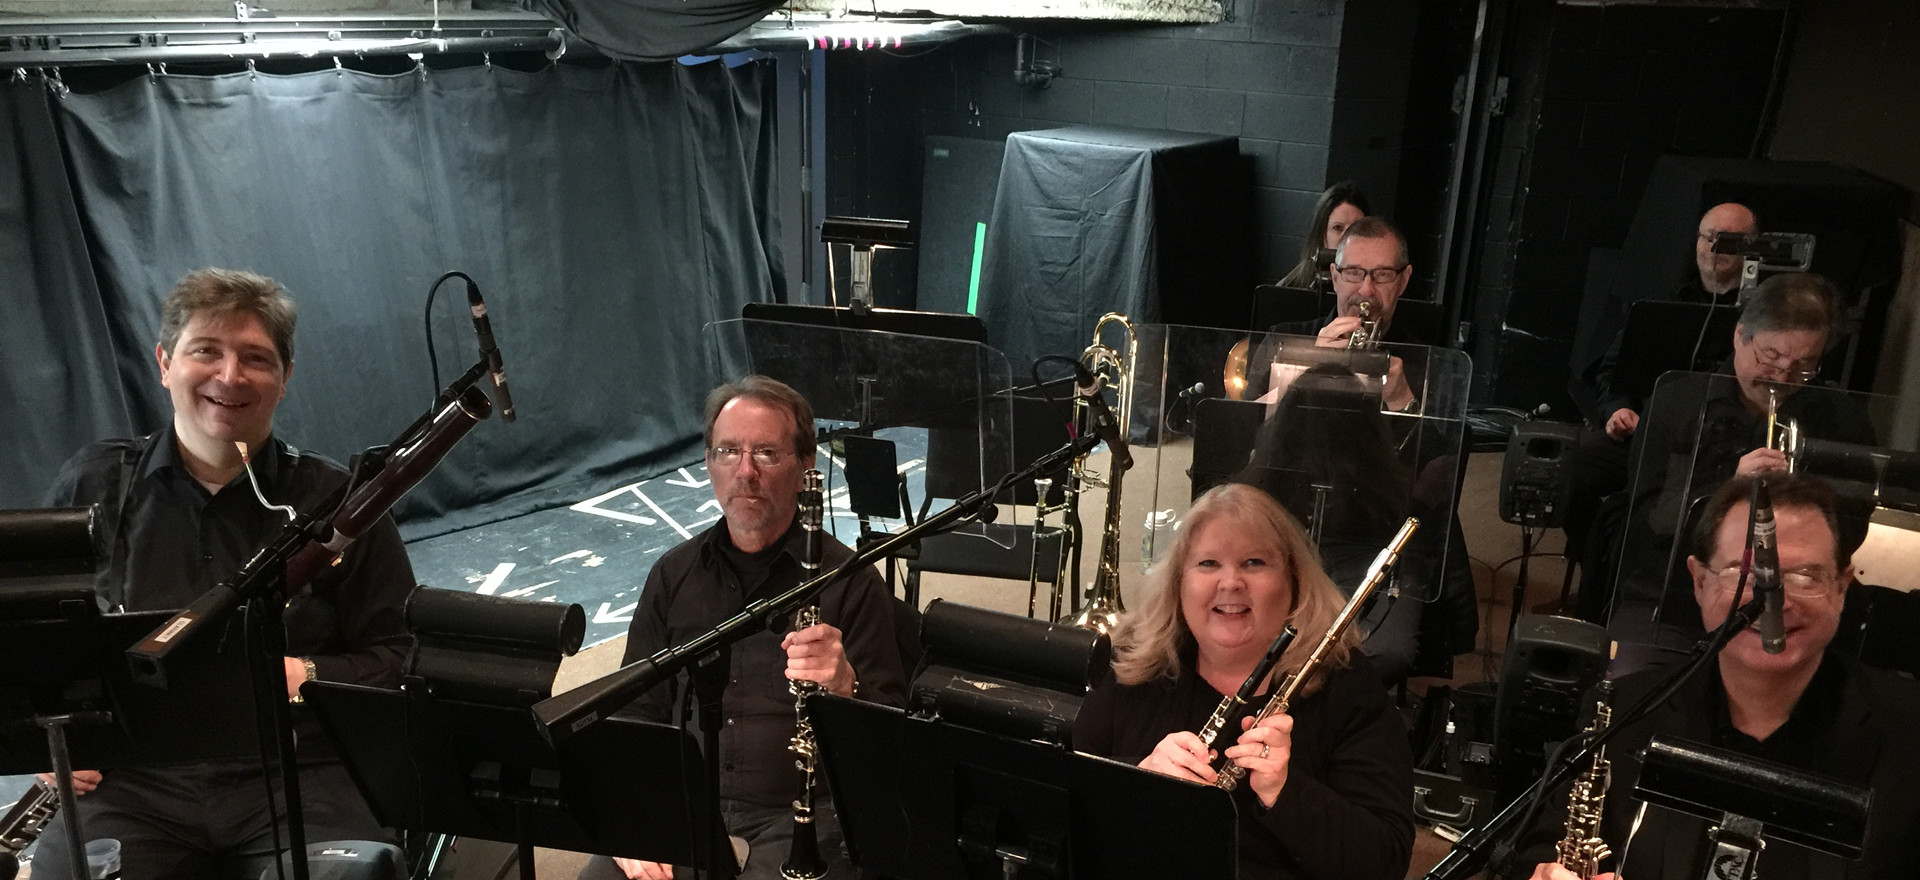 Diane at her other job playing the flute.  This is the pit orchestra for The sound of Music.